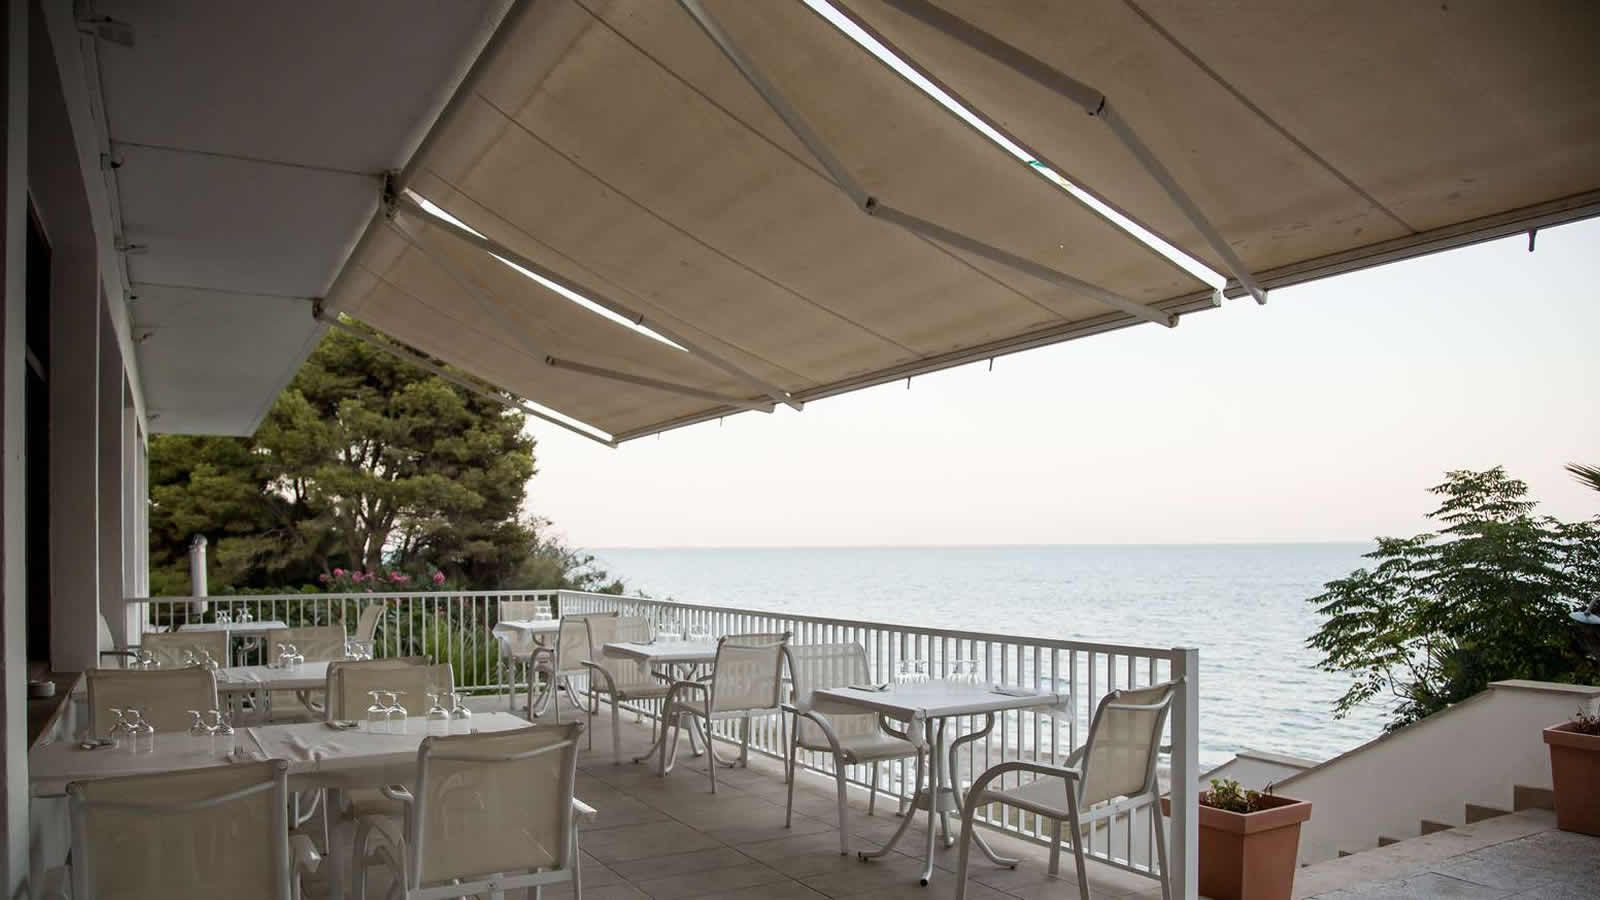 Restaurant Terrace at the Carlos III Hotel-Restaurant in Alcanar - San Carlos de la Rapita – the Ebro Delta